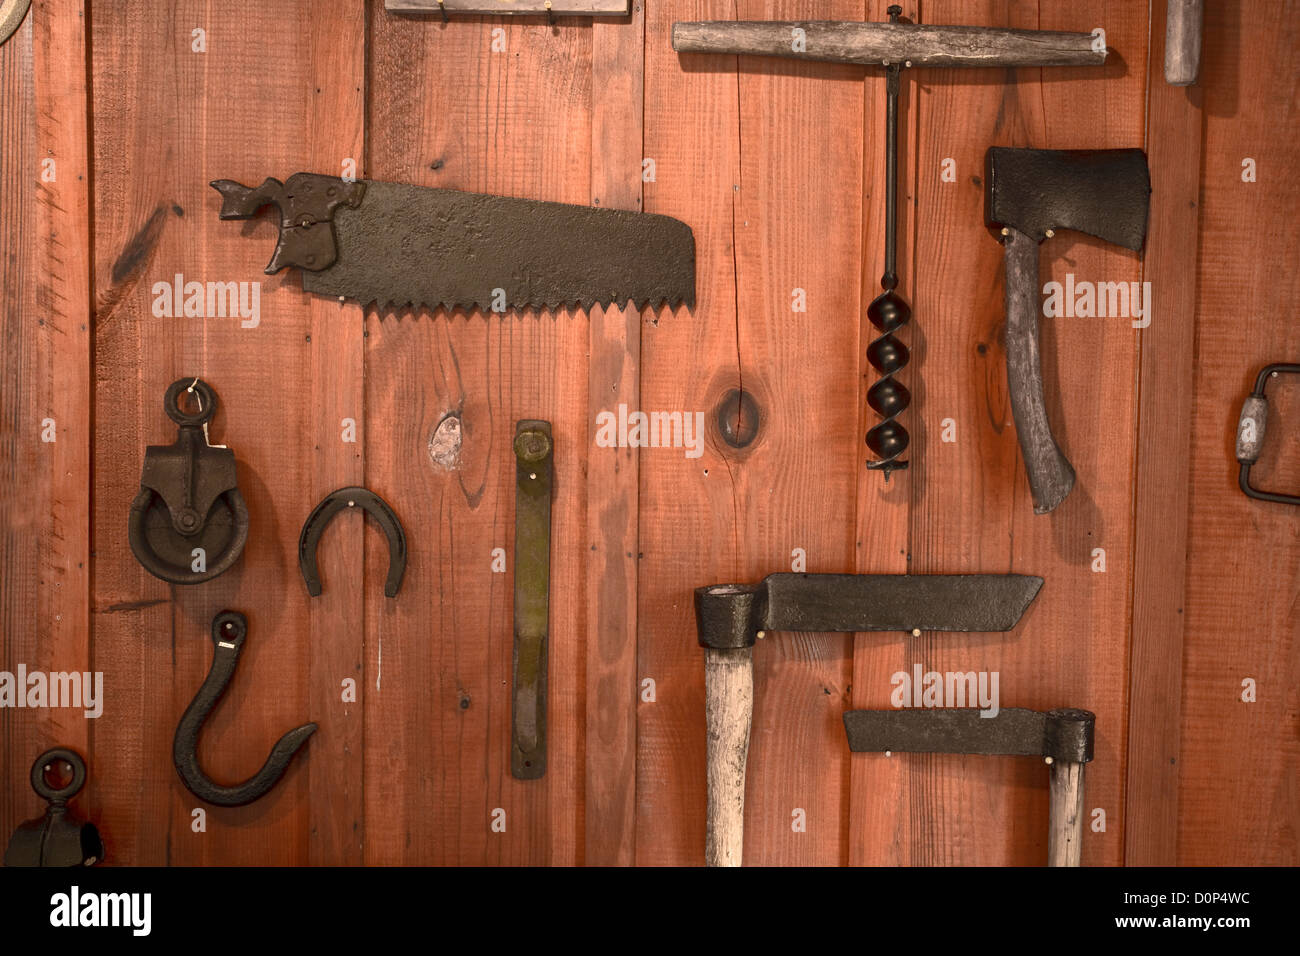 GA00145-00...GEORGIA - Display of old farm tools as part of the historic Relihan Cabin in General Coffee State Park. Stock Photo